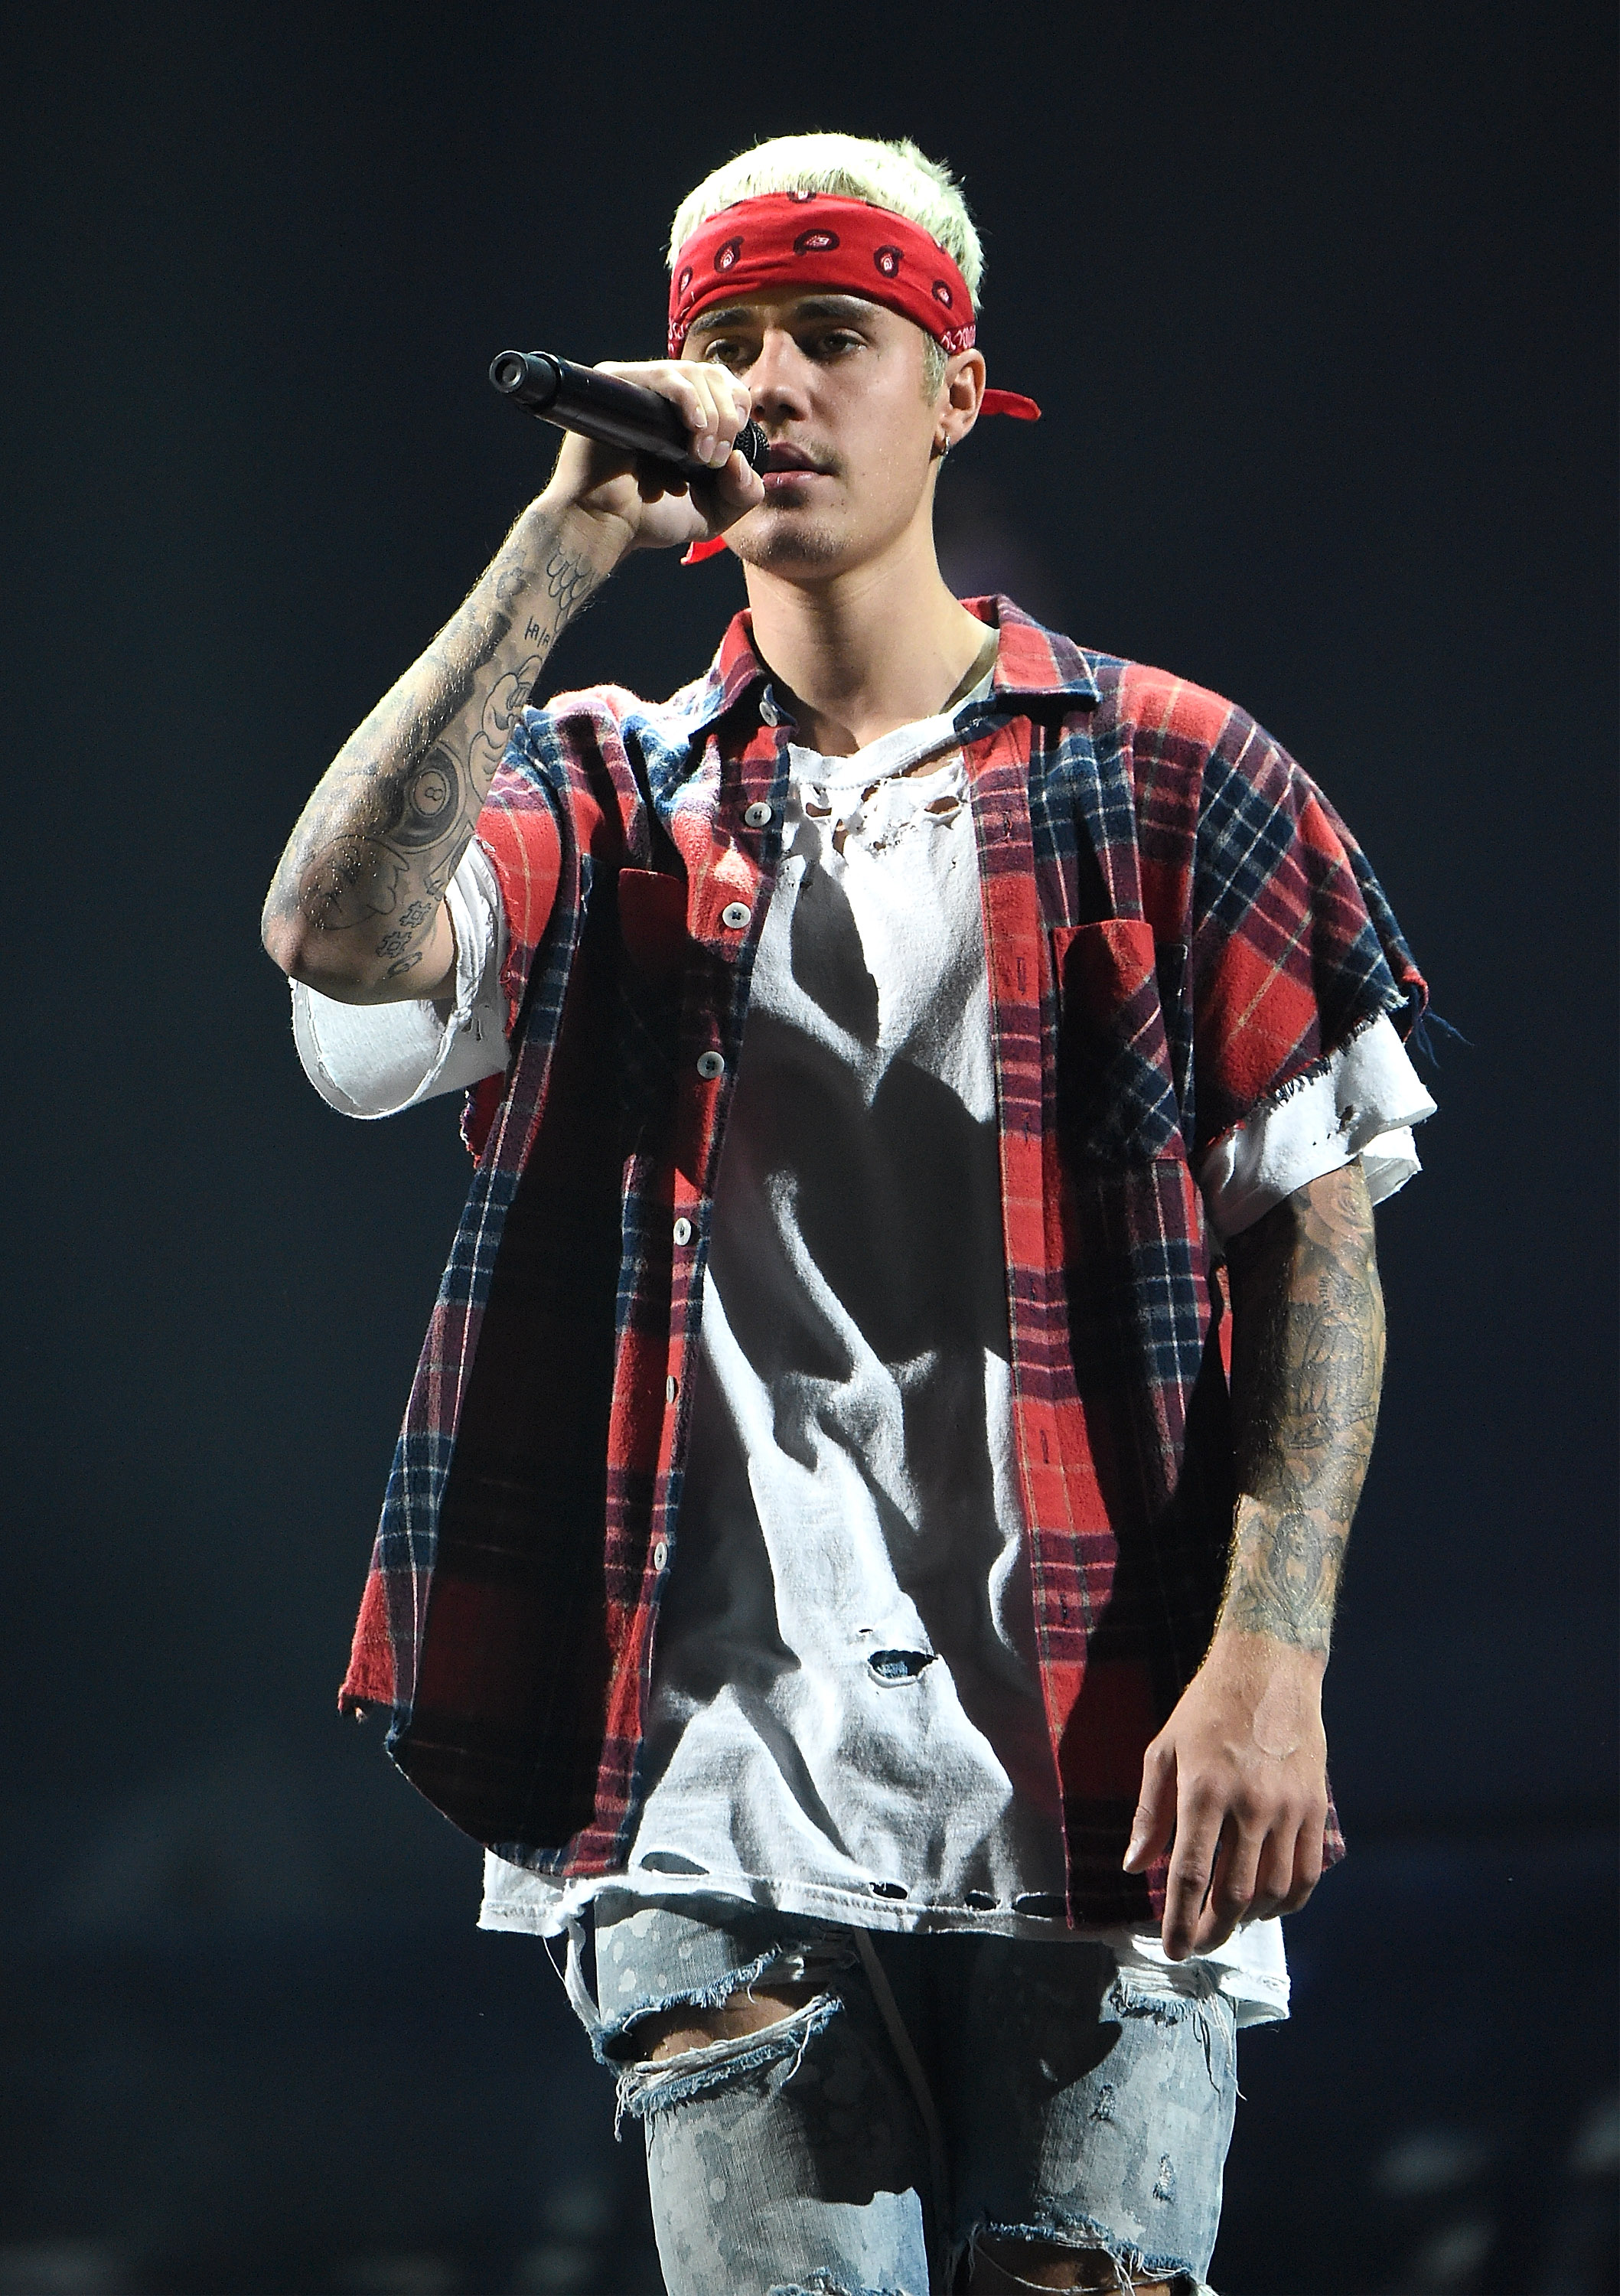 NEW YORK, NY - JULY 19:  Justin Bieber performs on stage during his  Purpose  tour at Madison Square Garden on July 19, 2016 in New York City.  (Photo by Kevin Mazur/Getty Images)